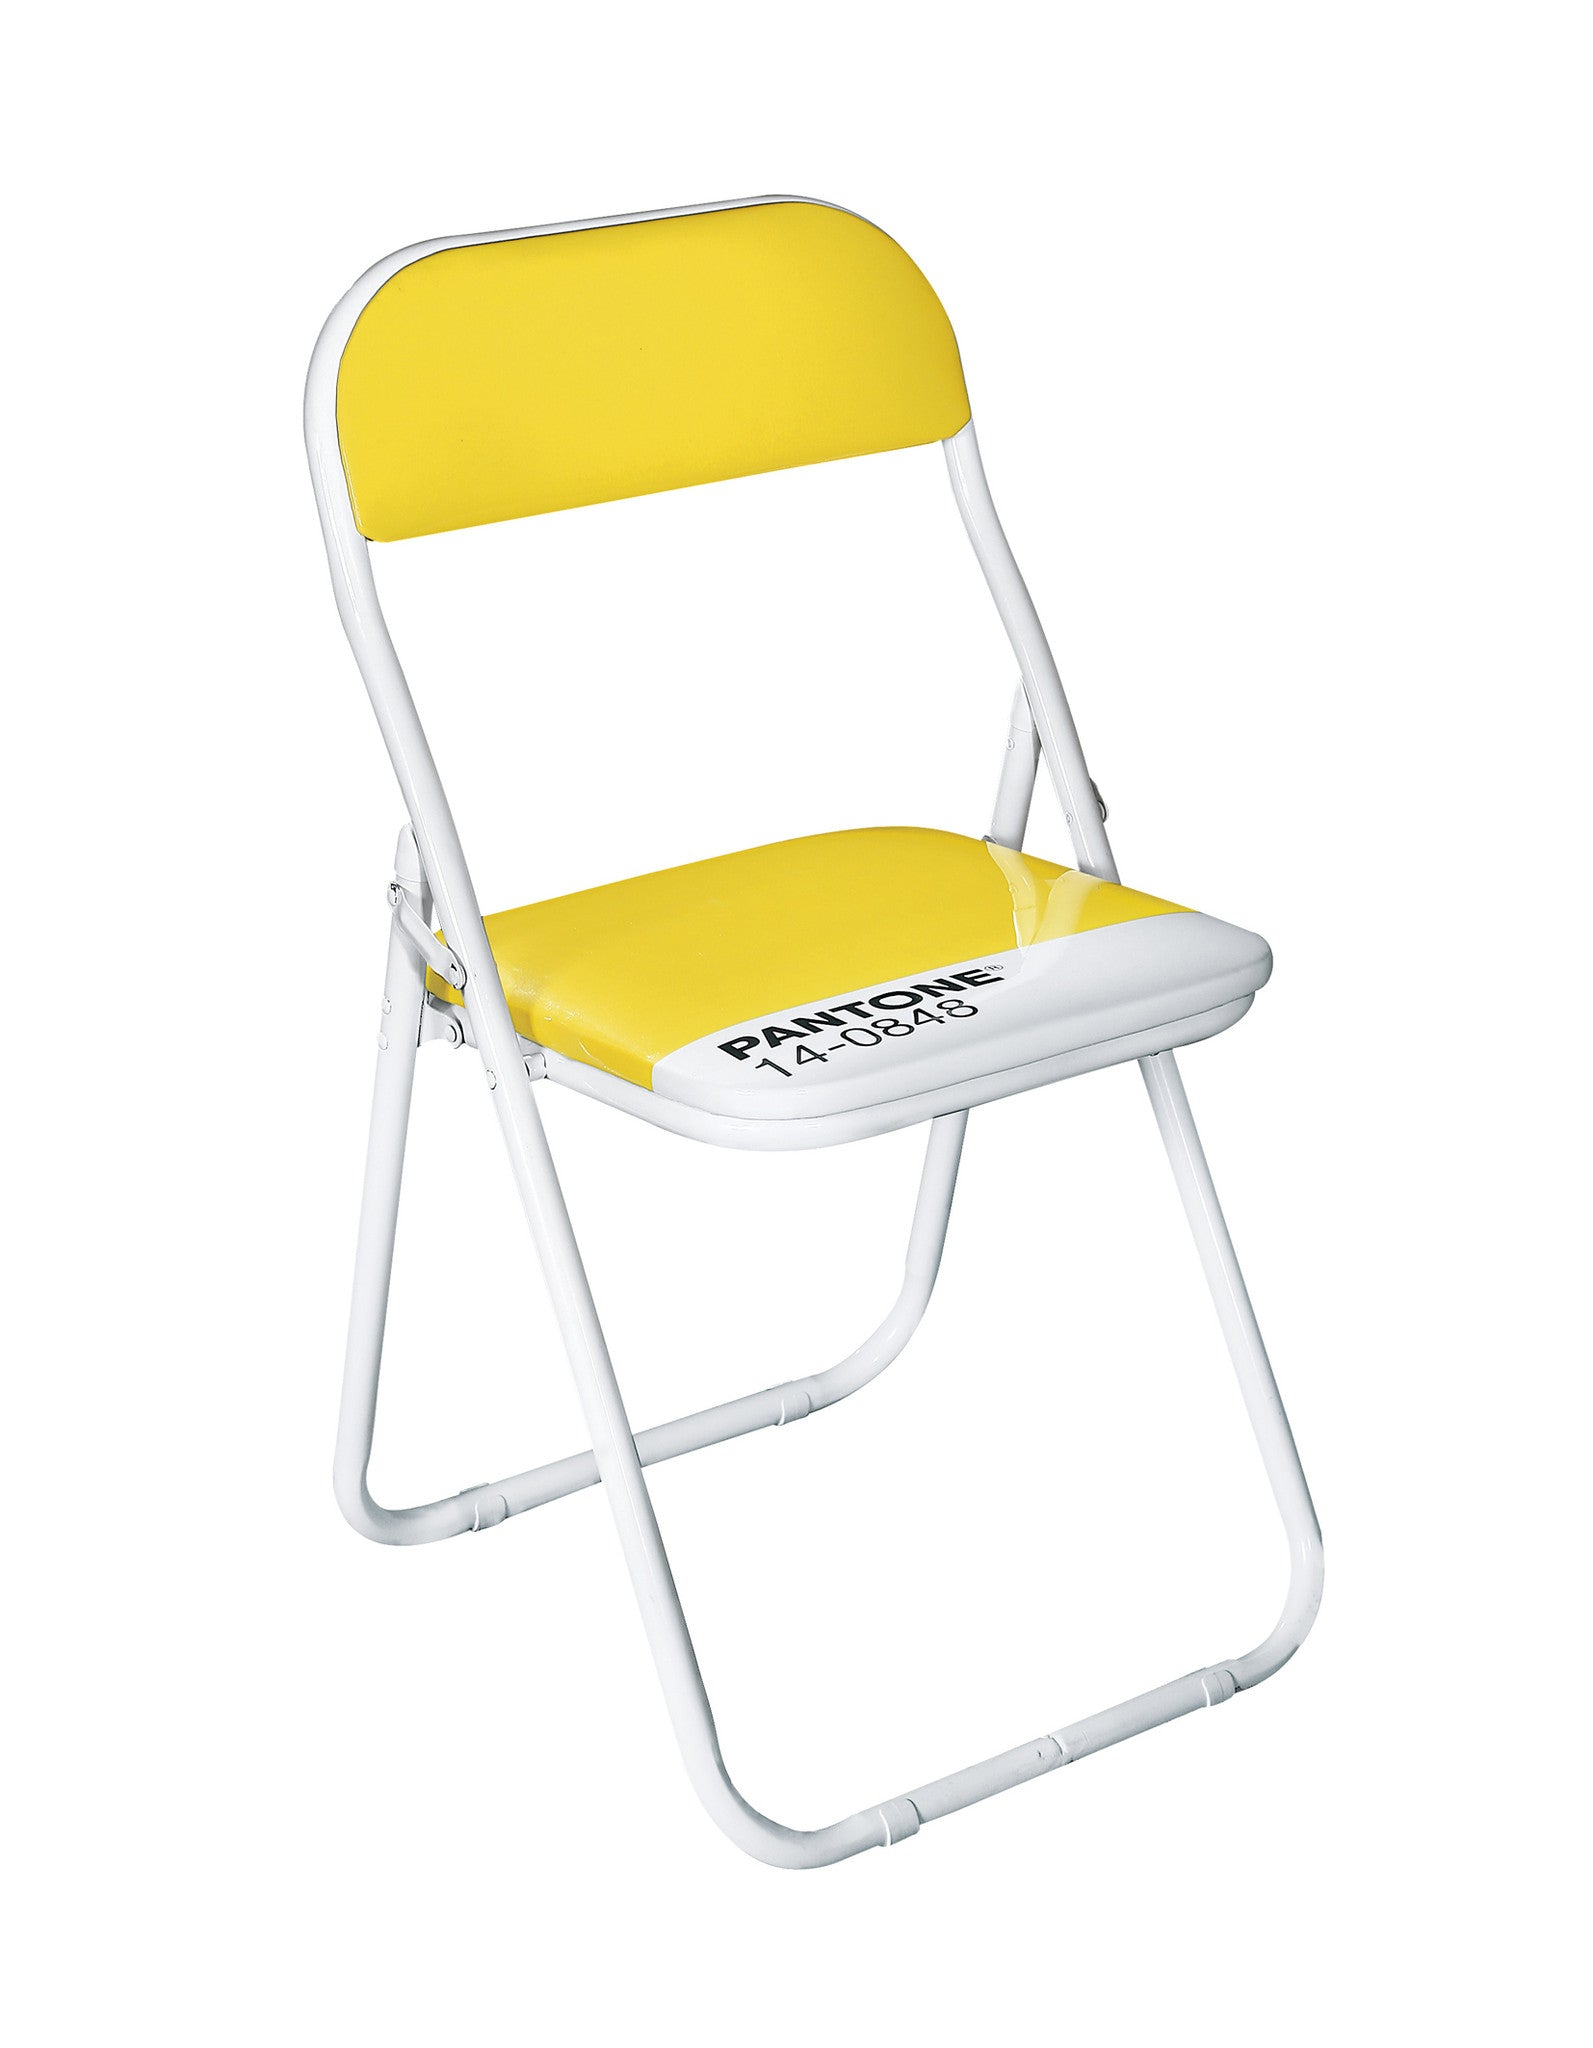 Pantone Universe Color Coded Folding Metal Chairs Furniture by